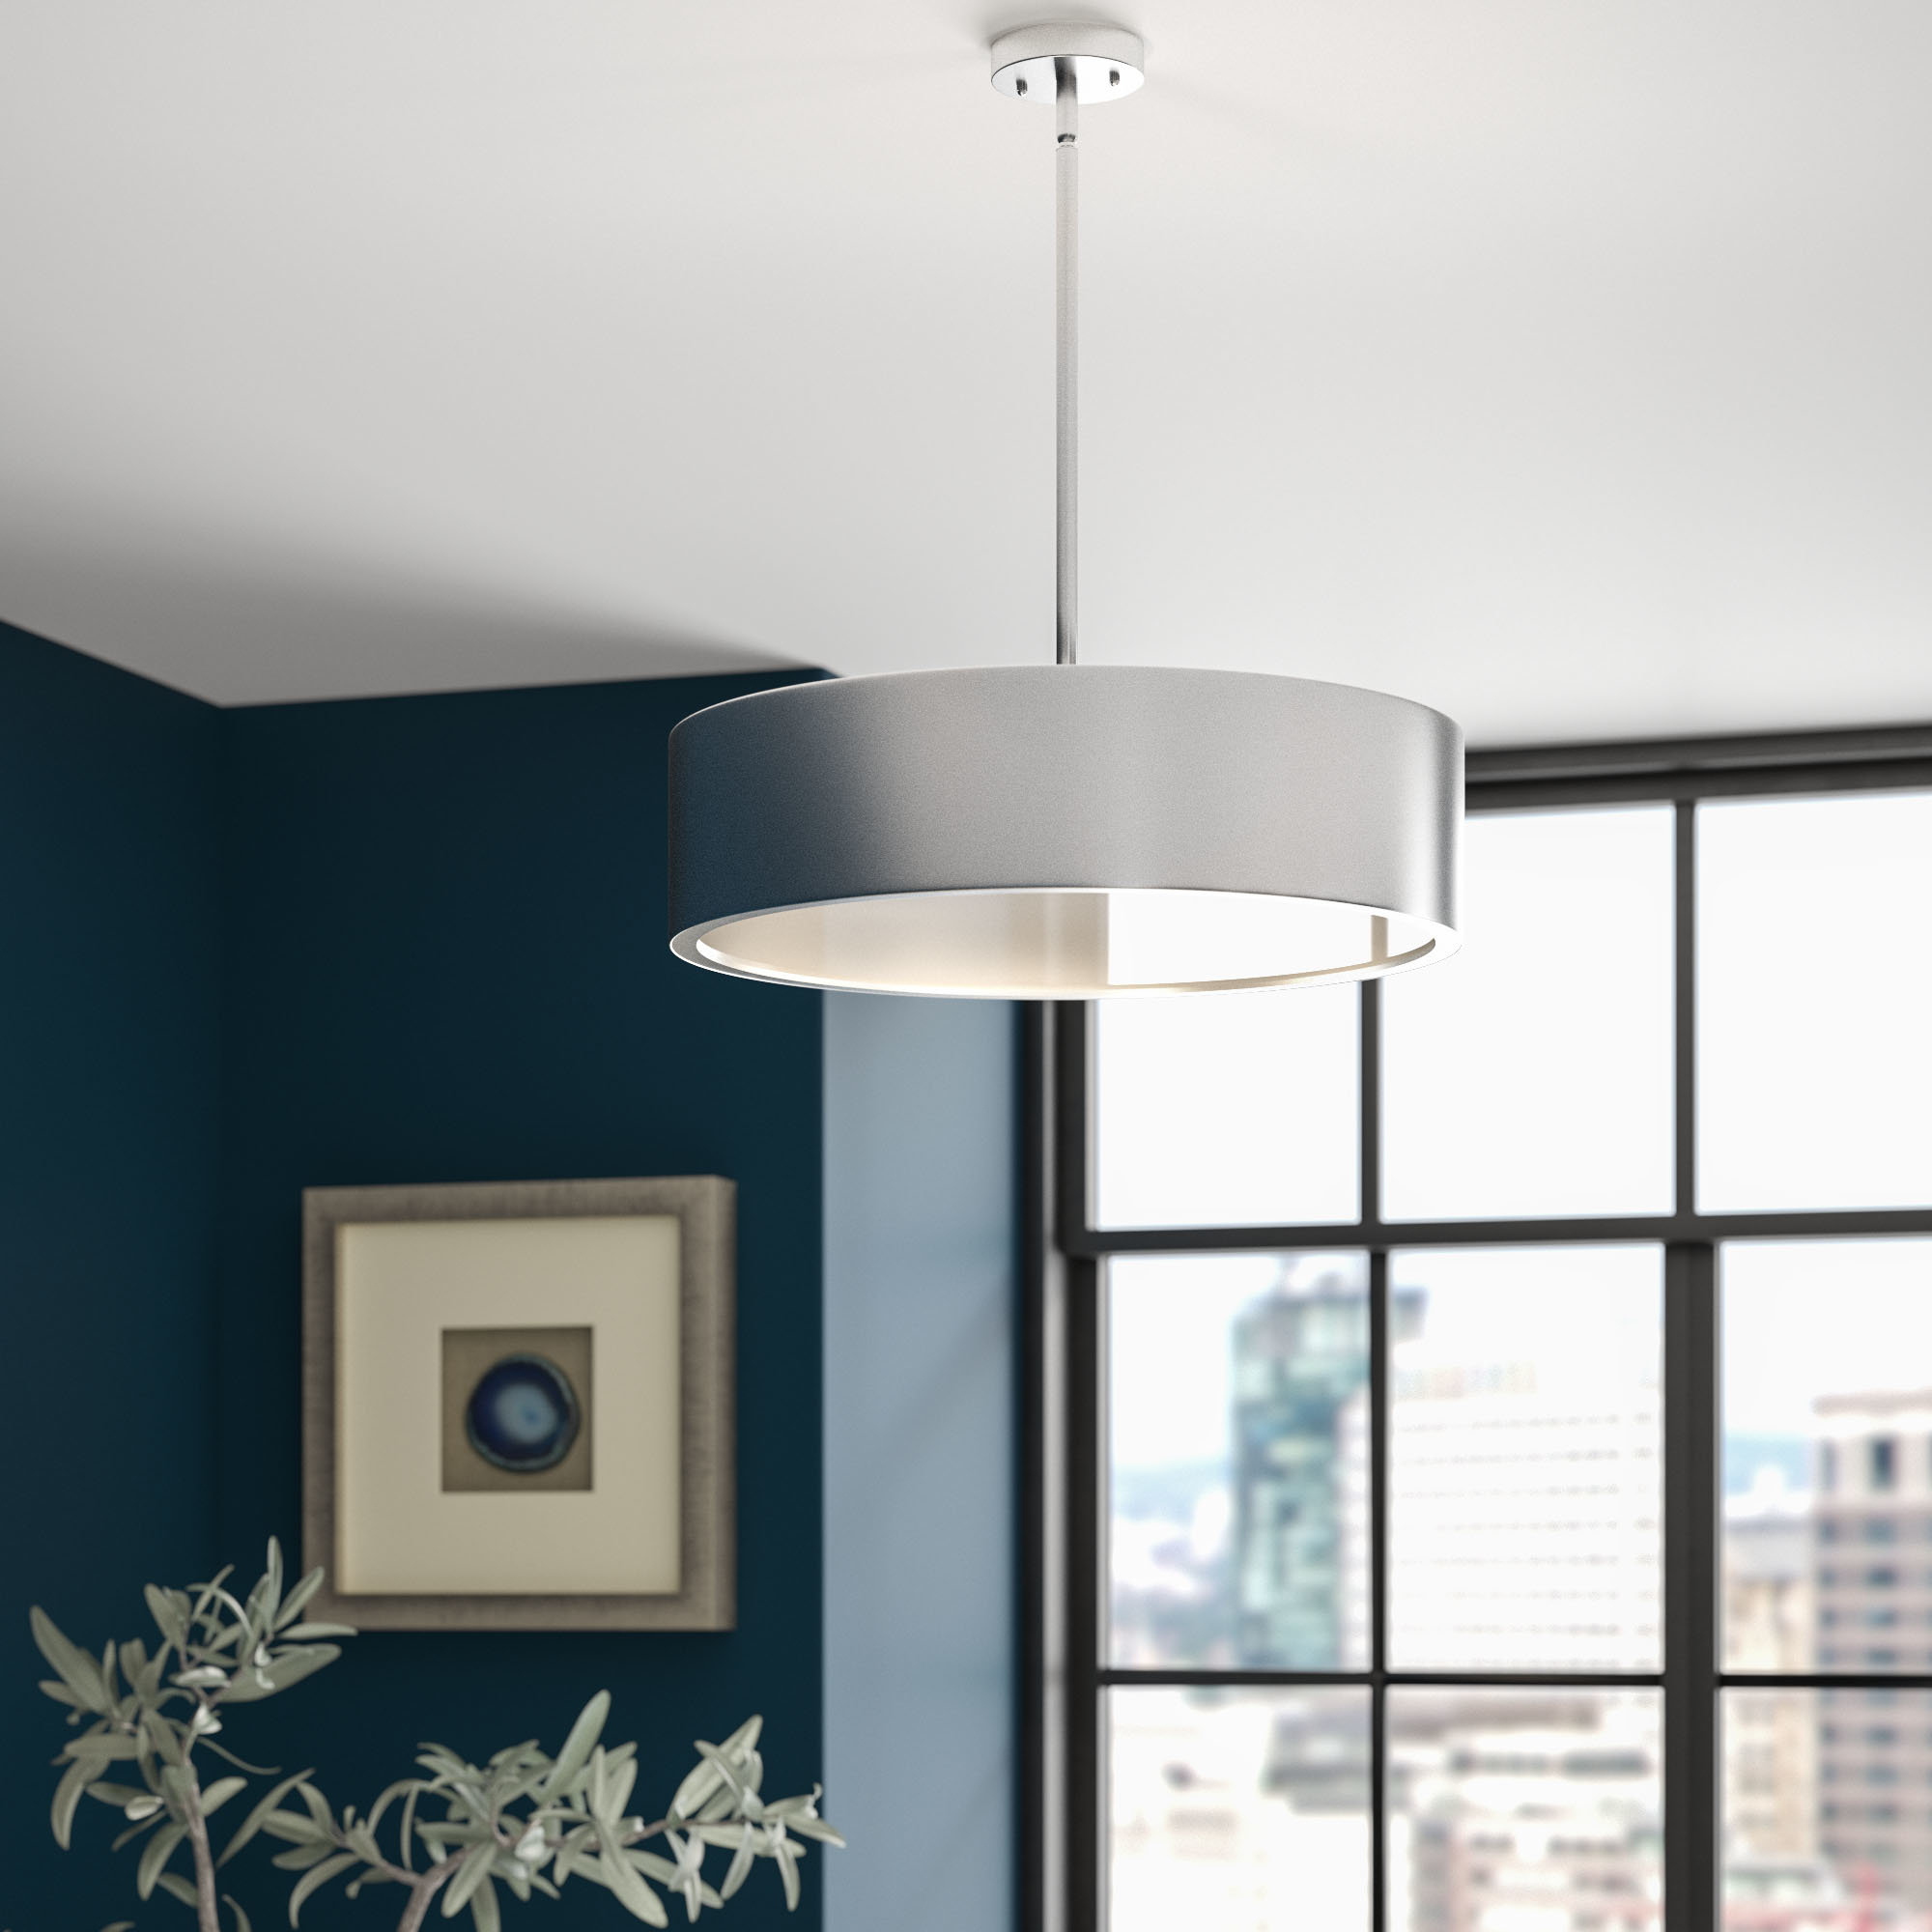 Radtke 3 Light Single Drum Pendant For Burslem 3 Light Single Drum Pendants (Gallery 4 of 30)